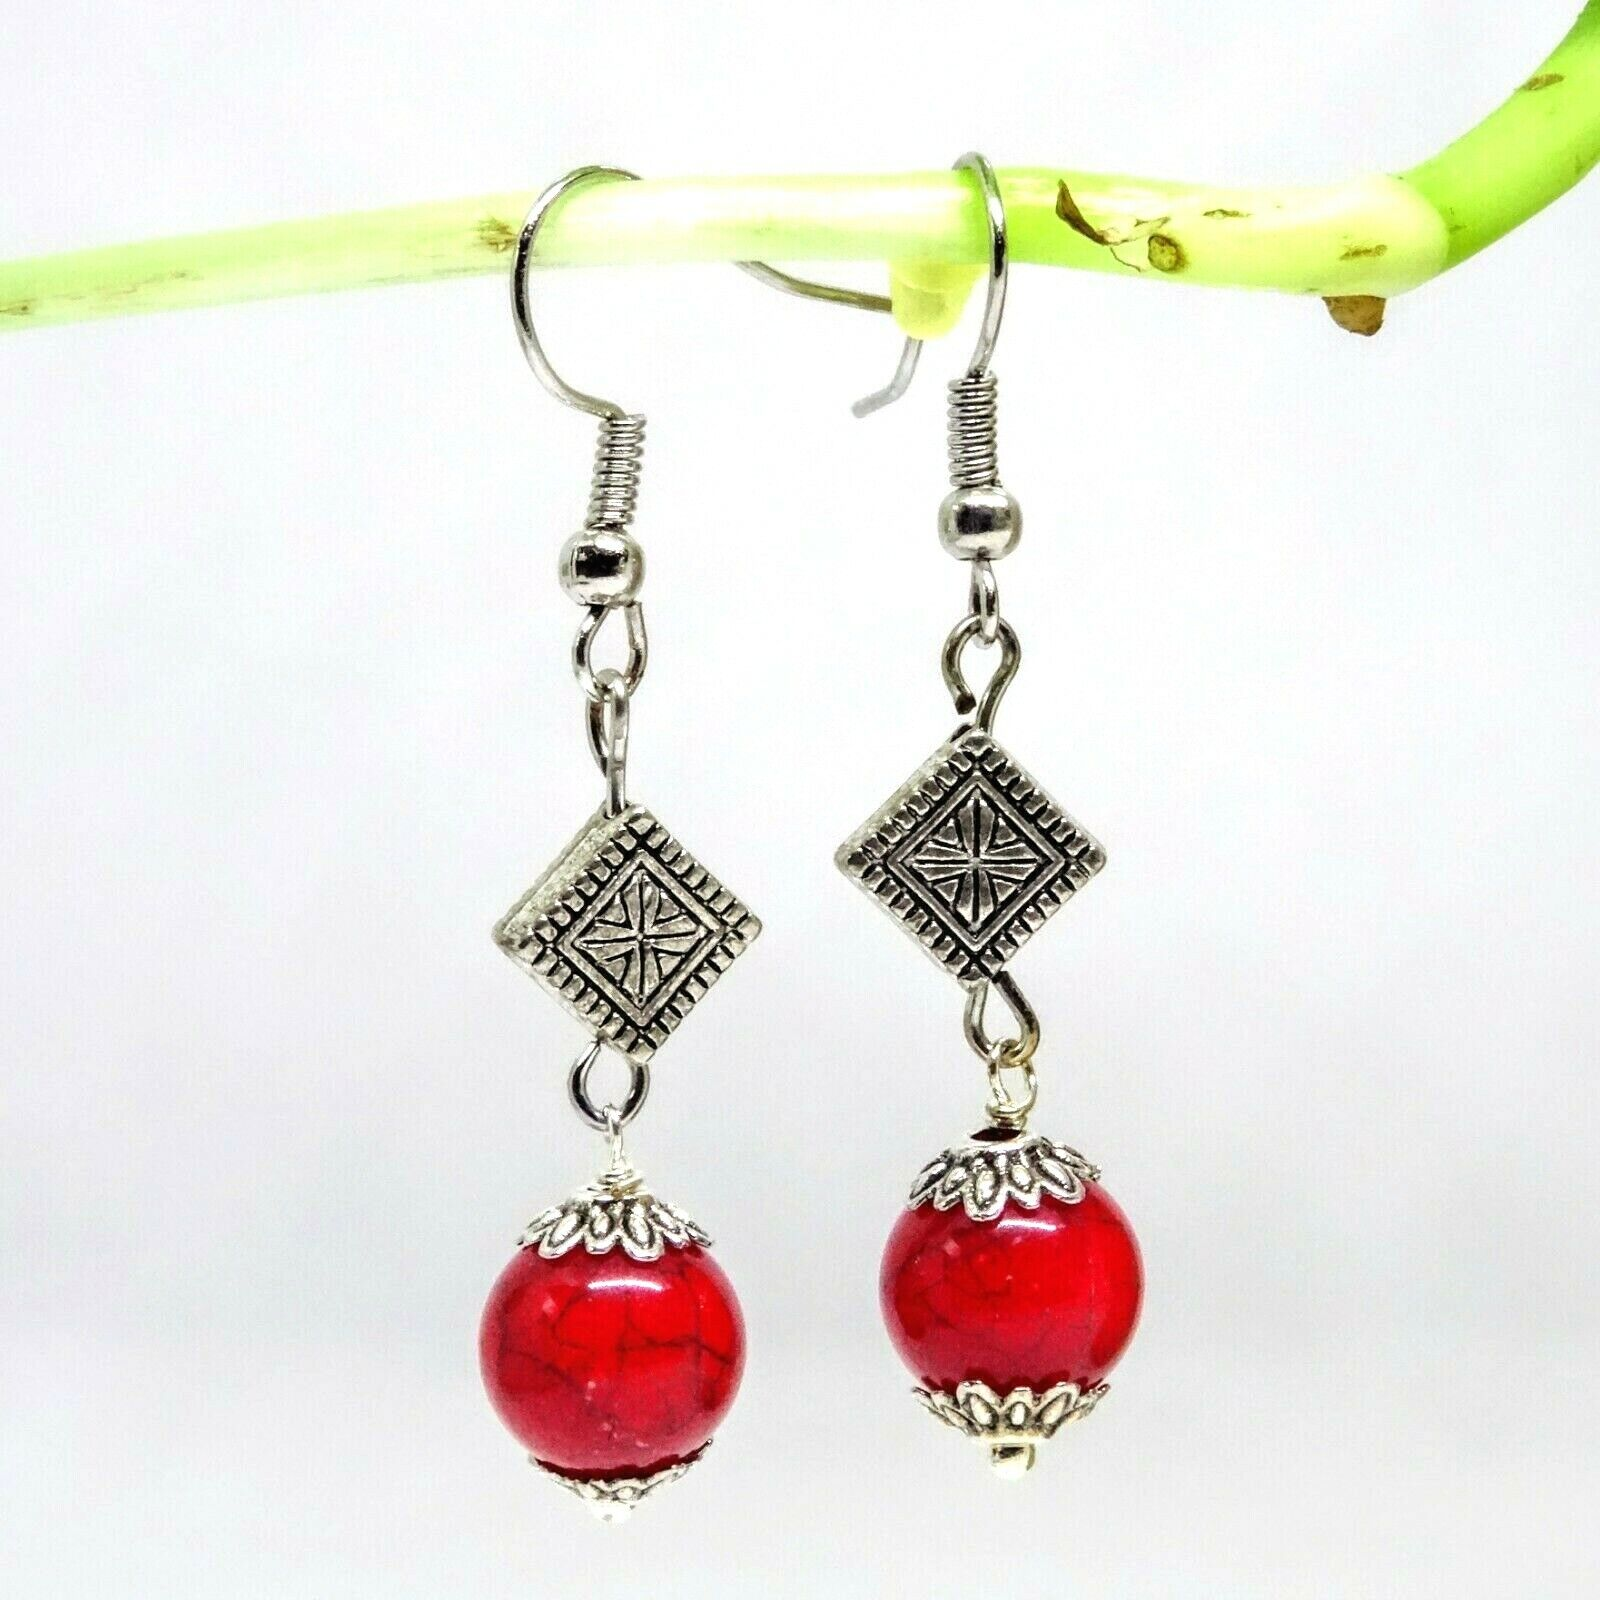 HANDCRAFTED LIGHT WEIGHT SIMPLE RED DANGLE DROP EARRINGS - $5.50